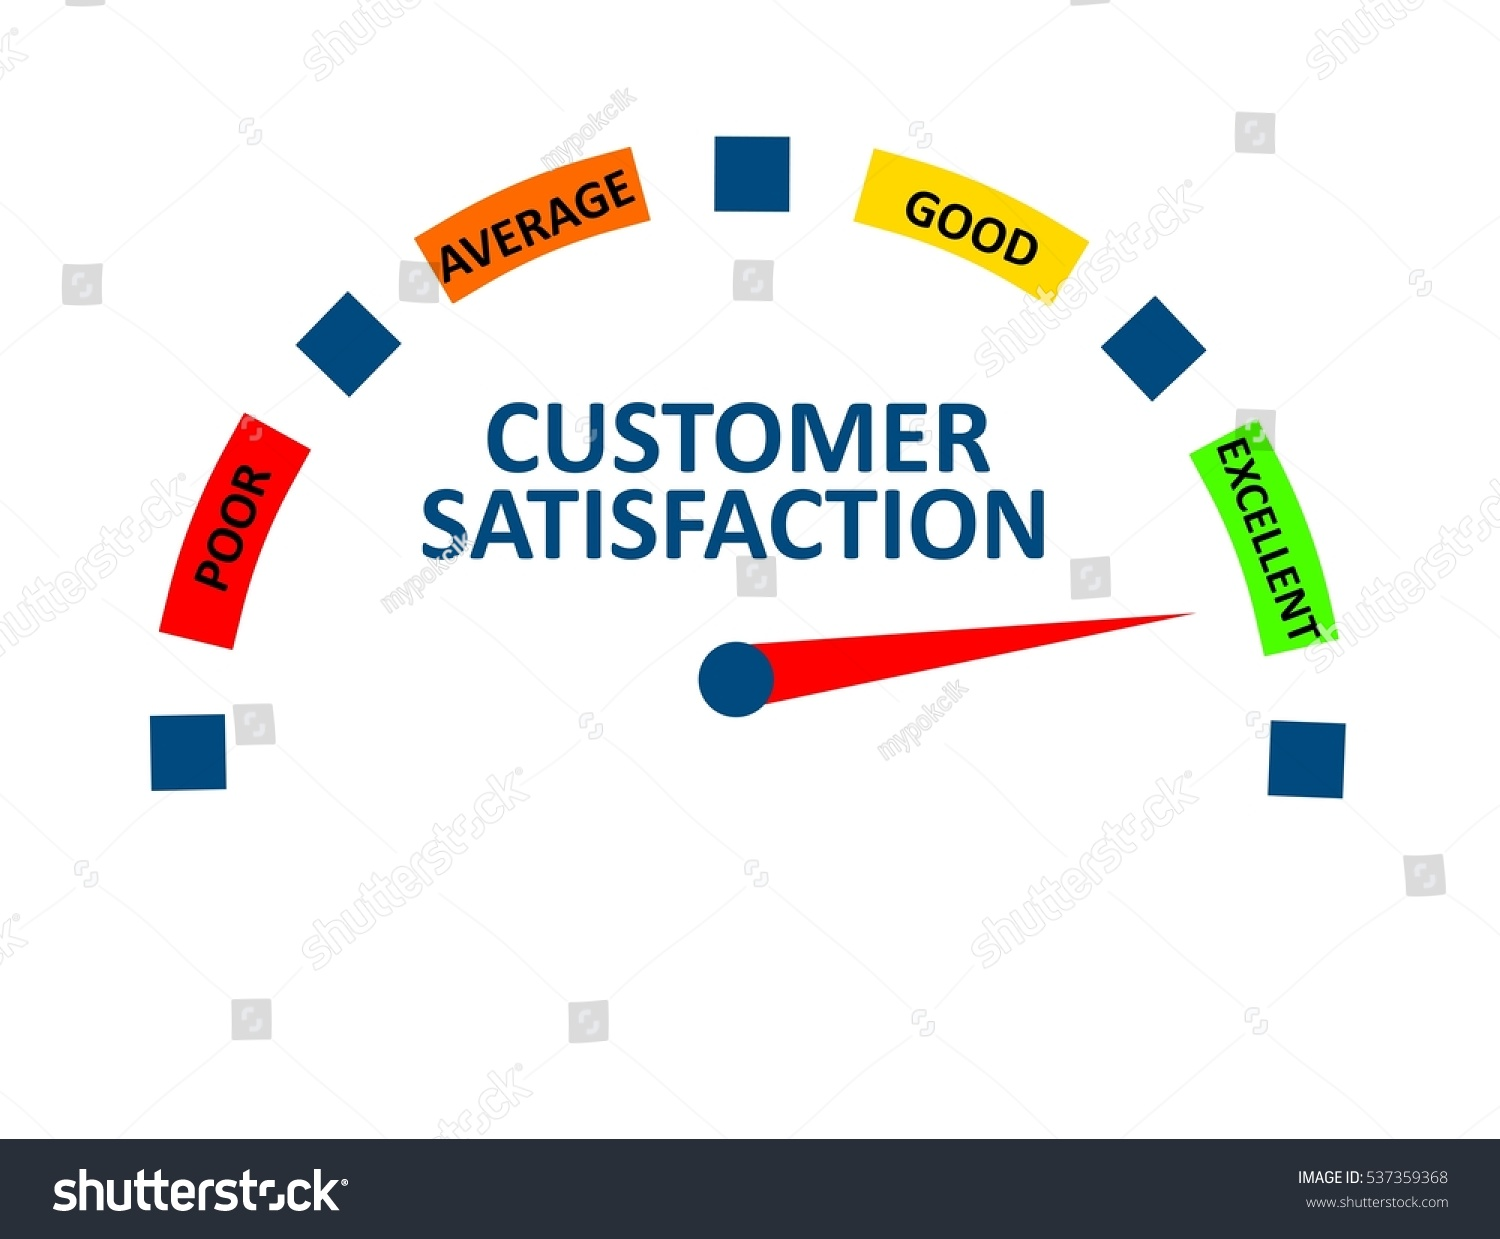 customer satisfaction on after sales service marketing essay How after sales service quality dimensions affect customer sales management ccollege term paper related txt diamond geo engineering services essay on customer satisfaction a study of relationship marketing on customer satisfaction sample questionnaire for thesis about.